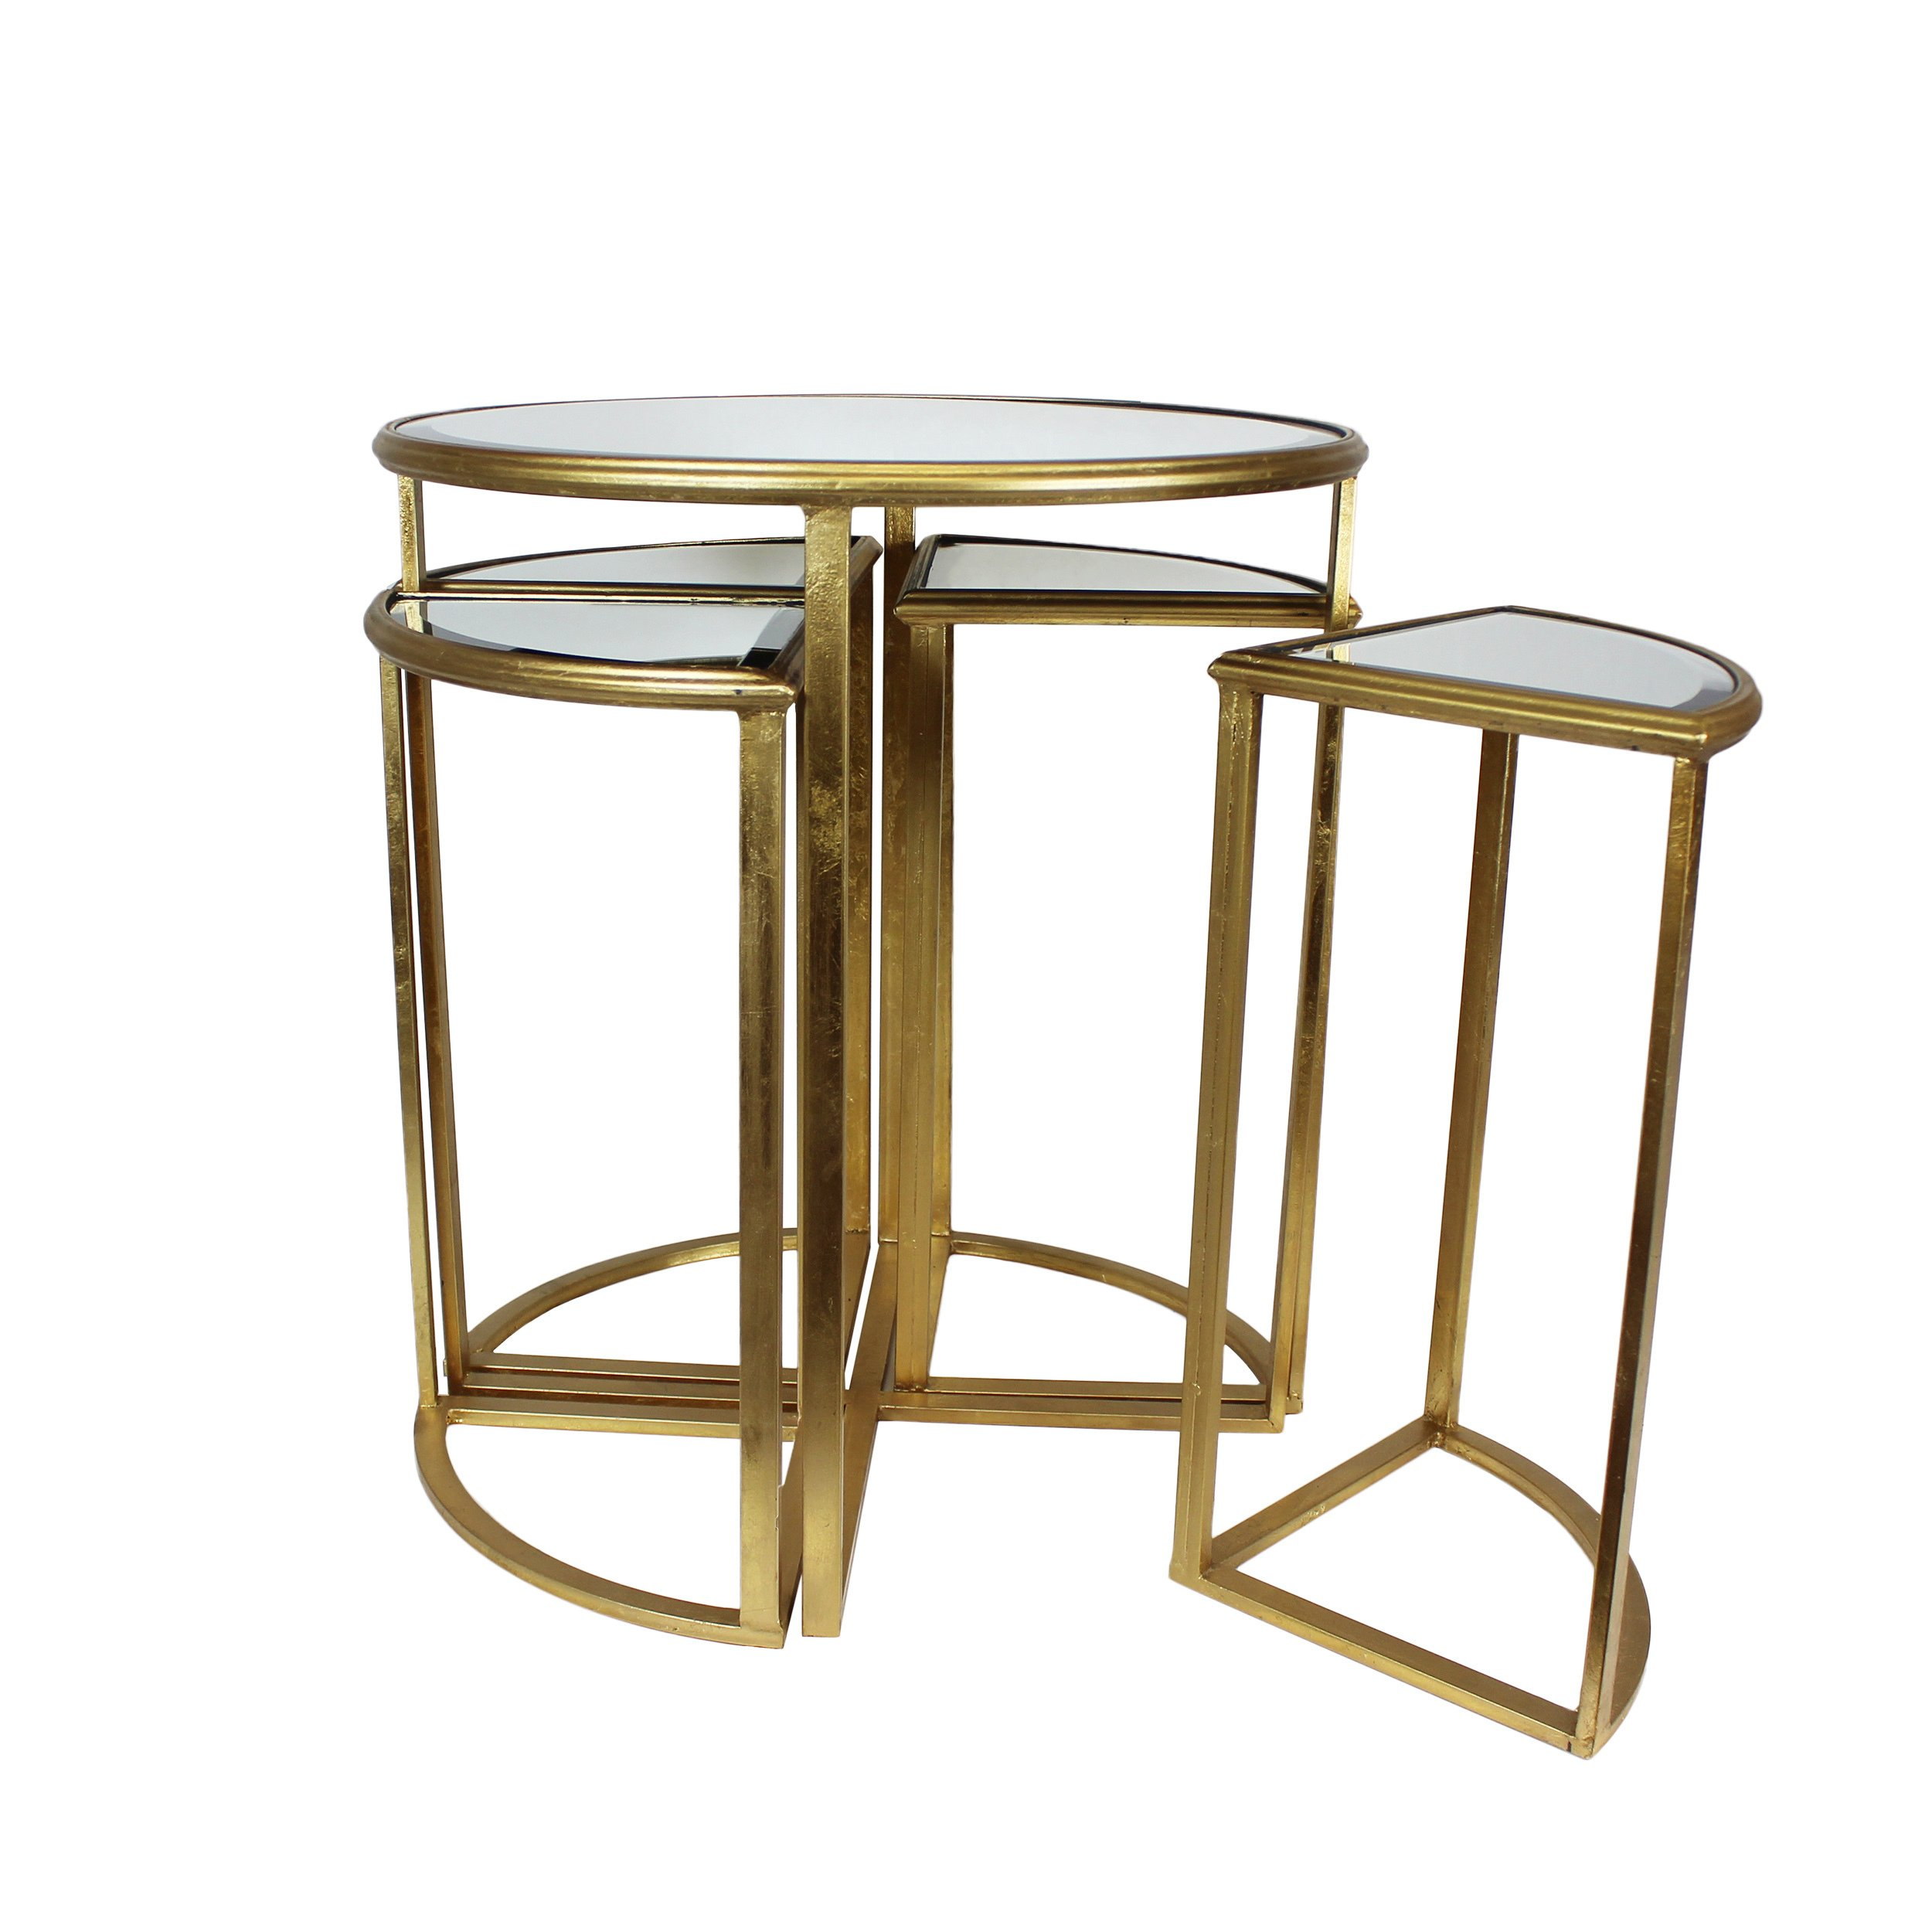 urban designs round gold mirror nesting accent table set and free shipping today chairside end foyer furniture pieces console with cabinets target threshold black marble dining